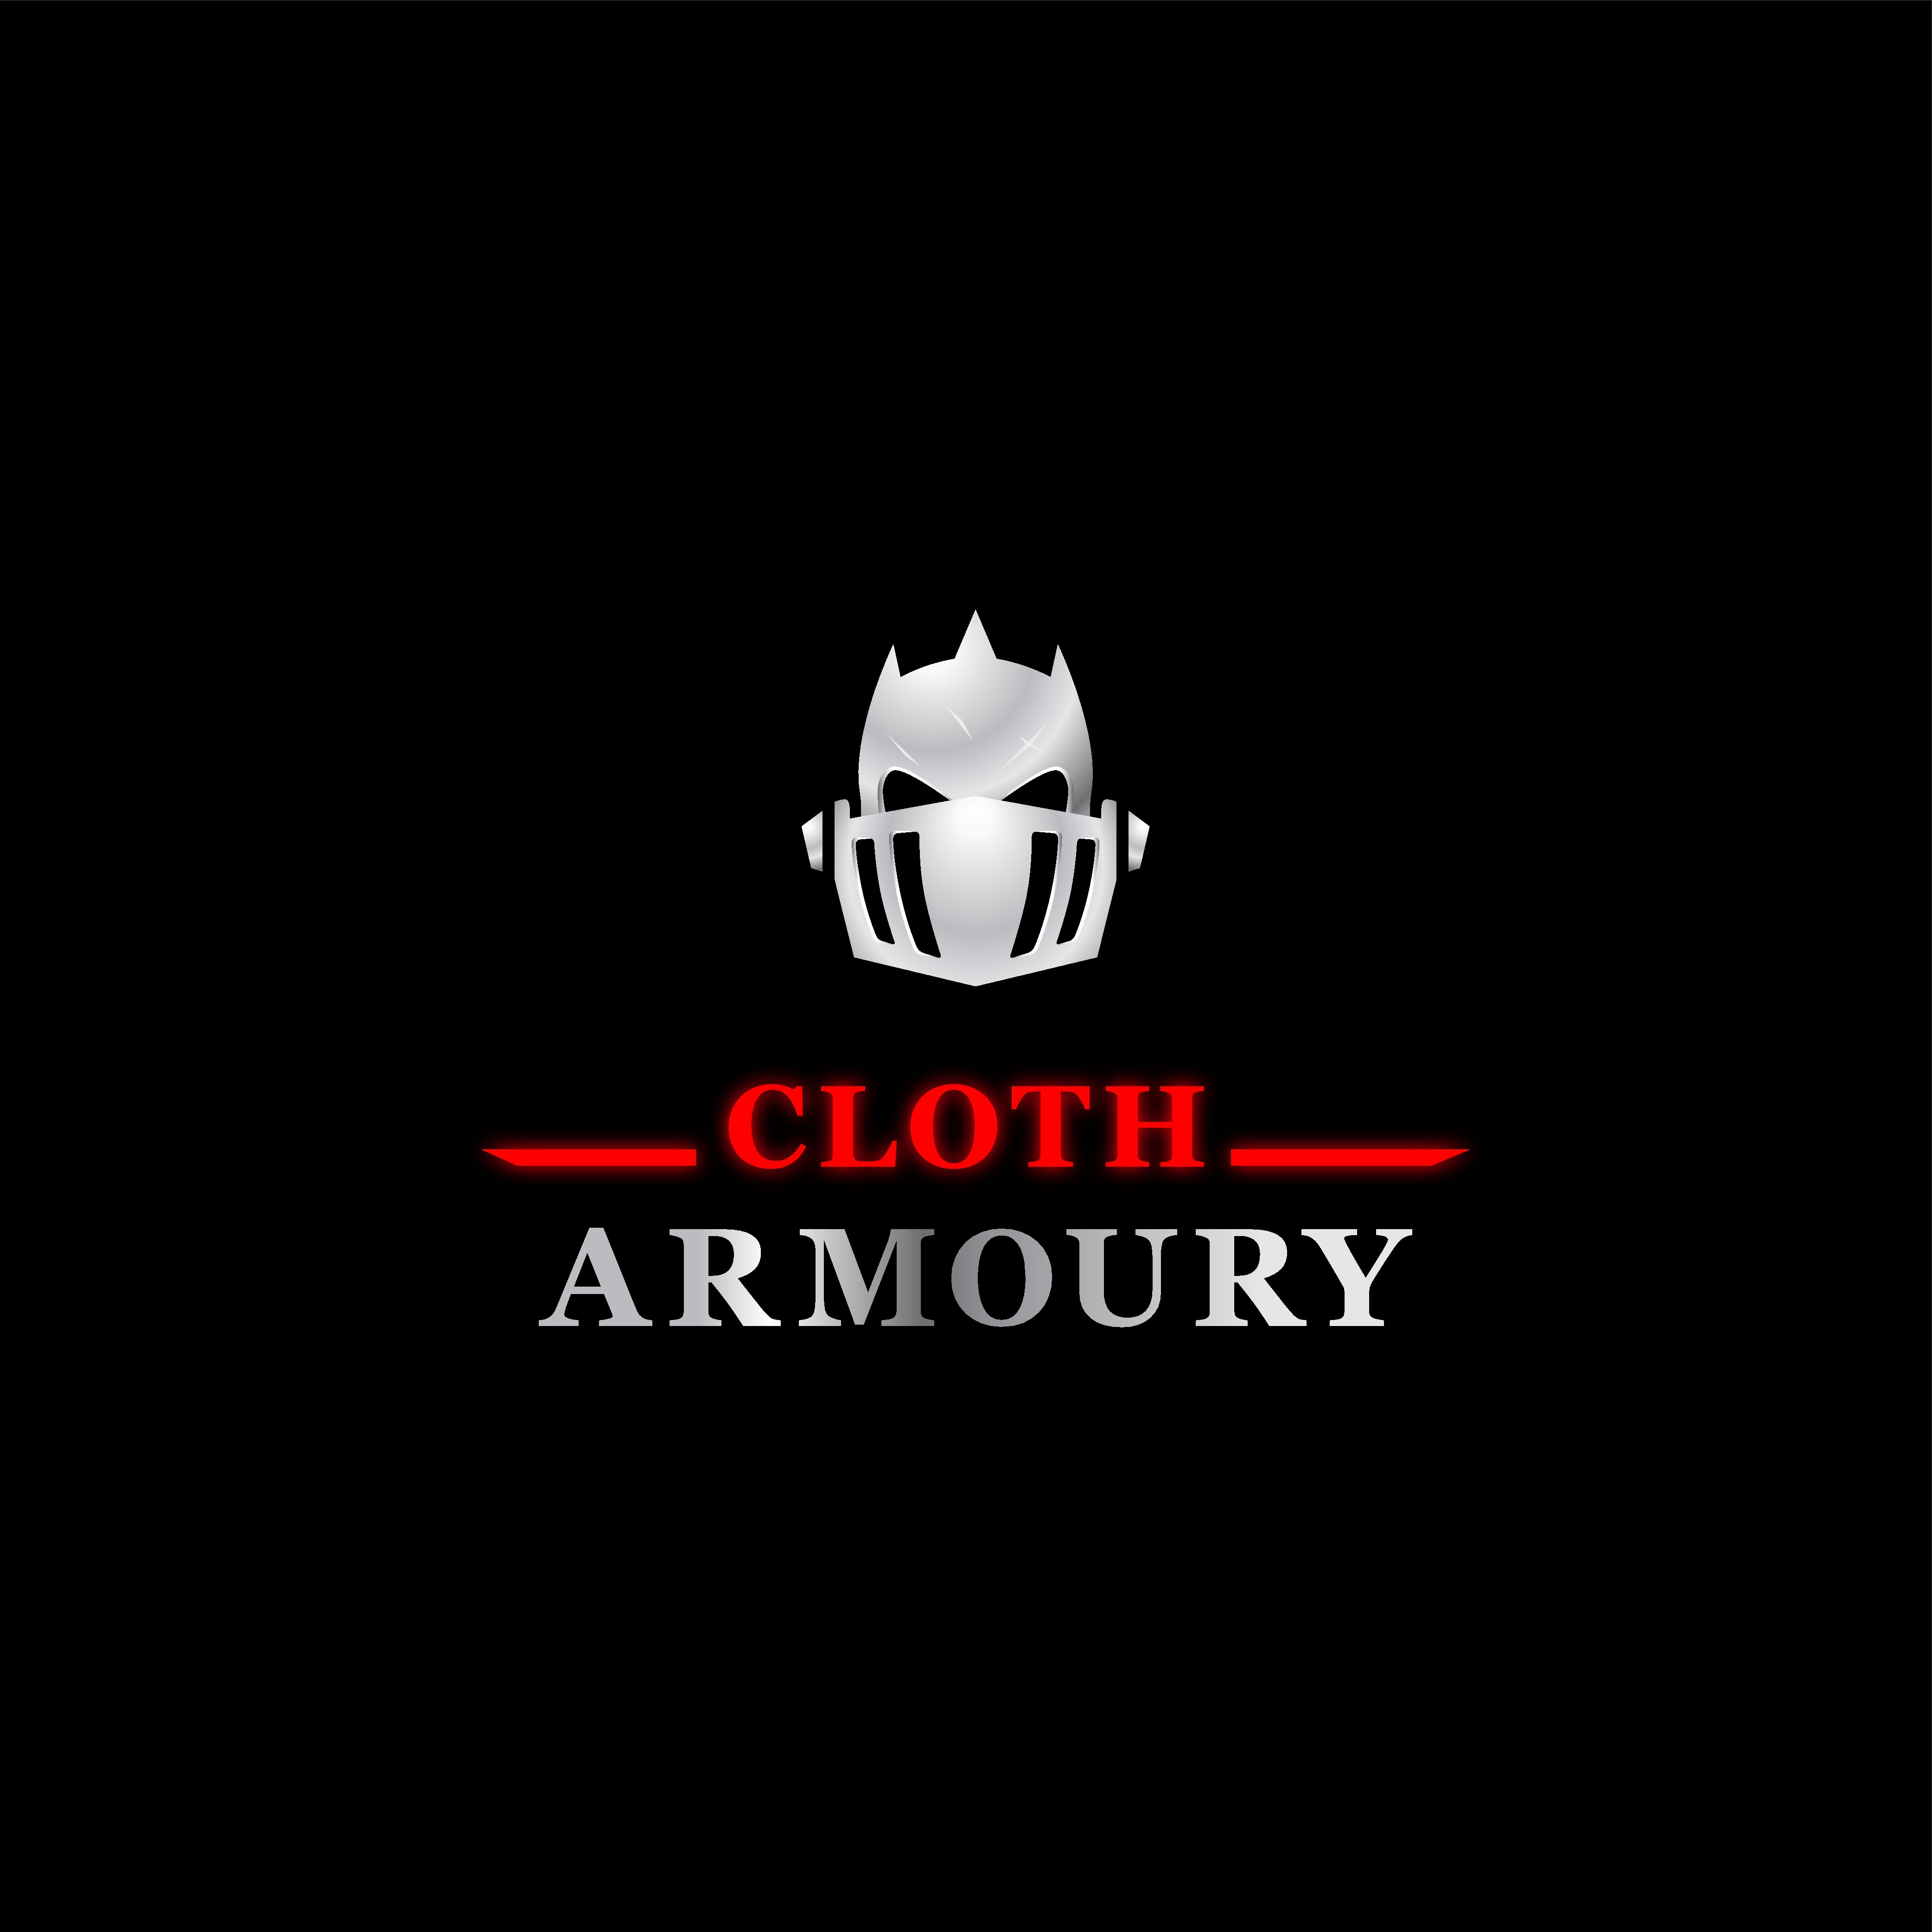 Create Logo for Apparel brand aimed at gamers/geeks